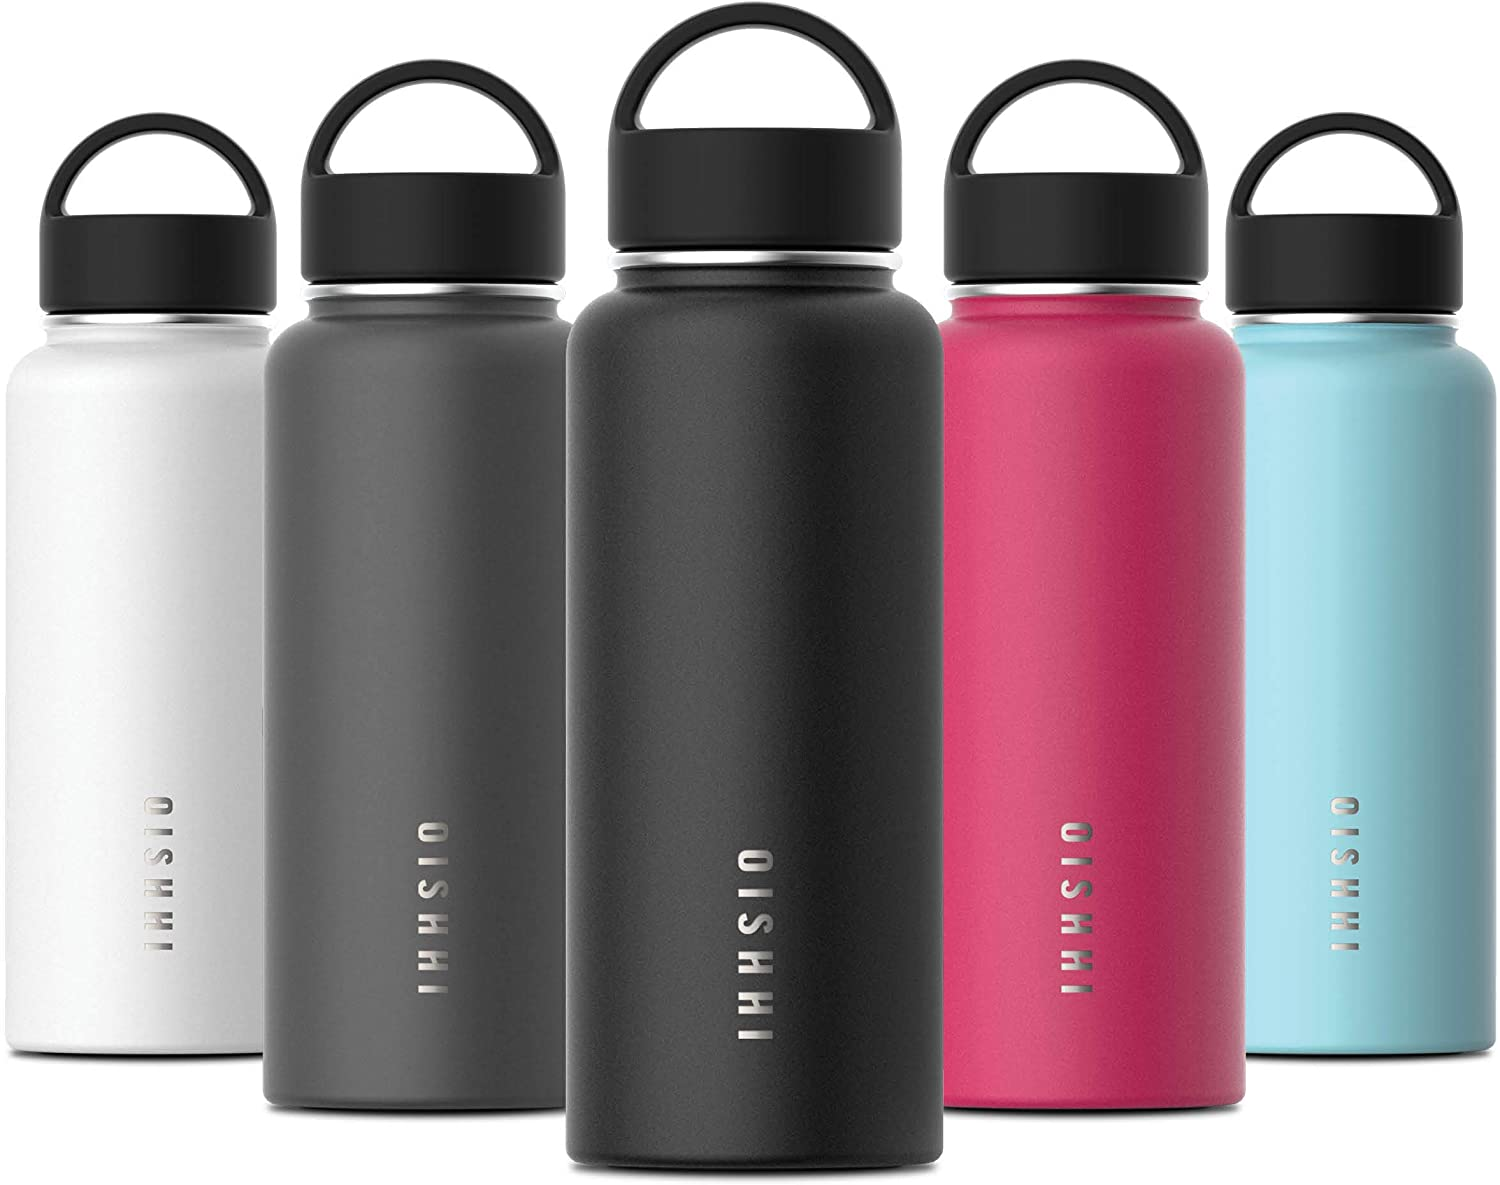 OISHHI Triple-Wall Water Bottle - 18/10 (SUS316) Stainless Steel Vacuum Insulated Bottles - 34oz,20oz Hydro Sports Wide Mouth Flask with Leak Proof Cap - Silicone Bottom Thermos Mug